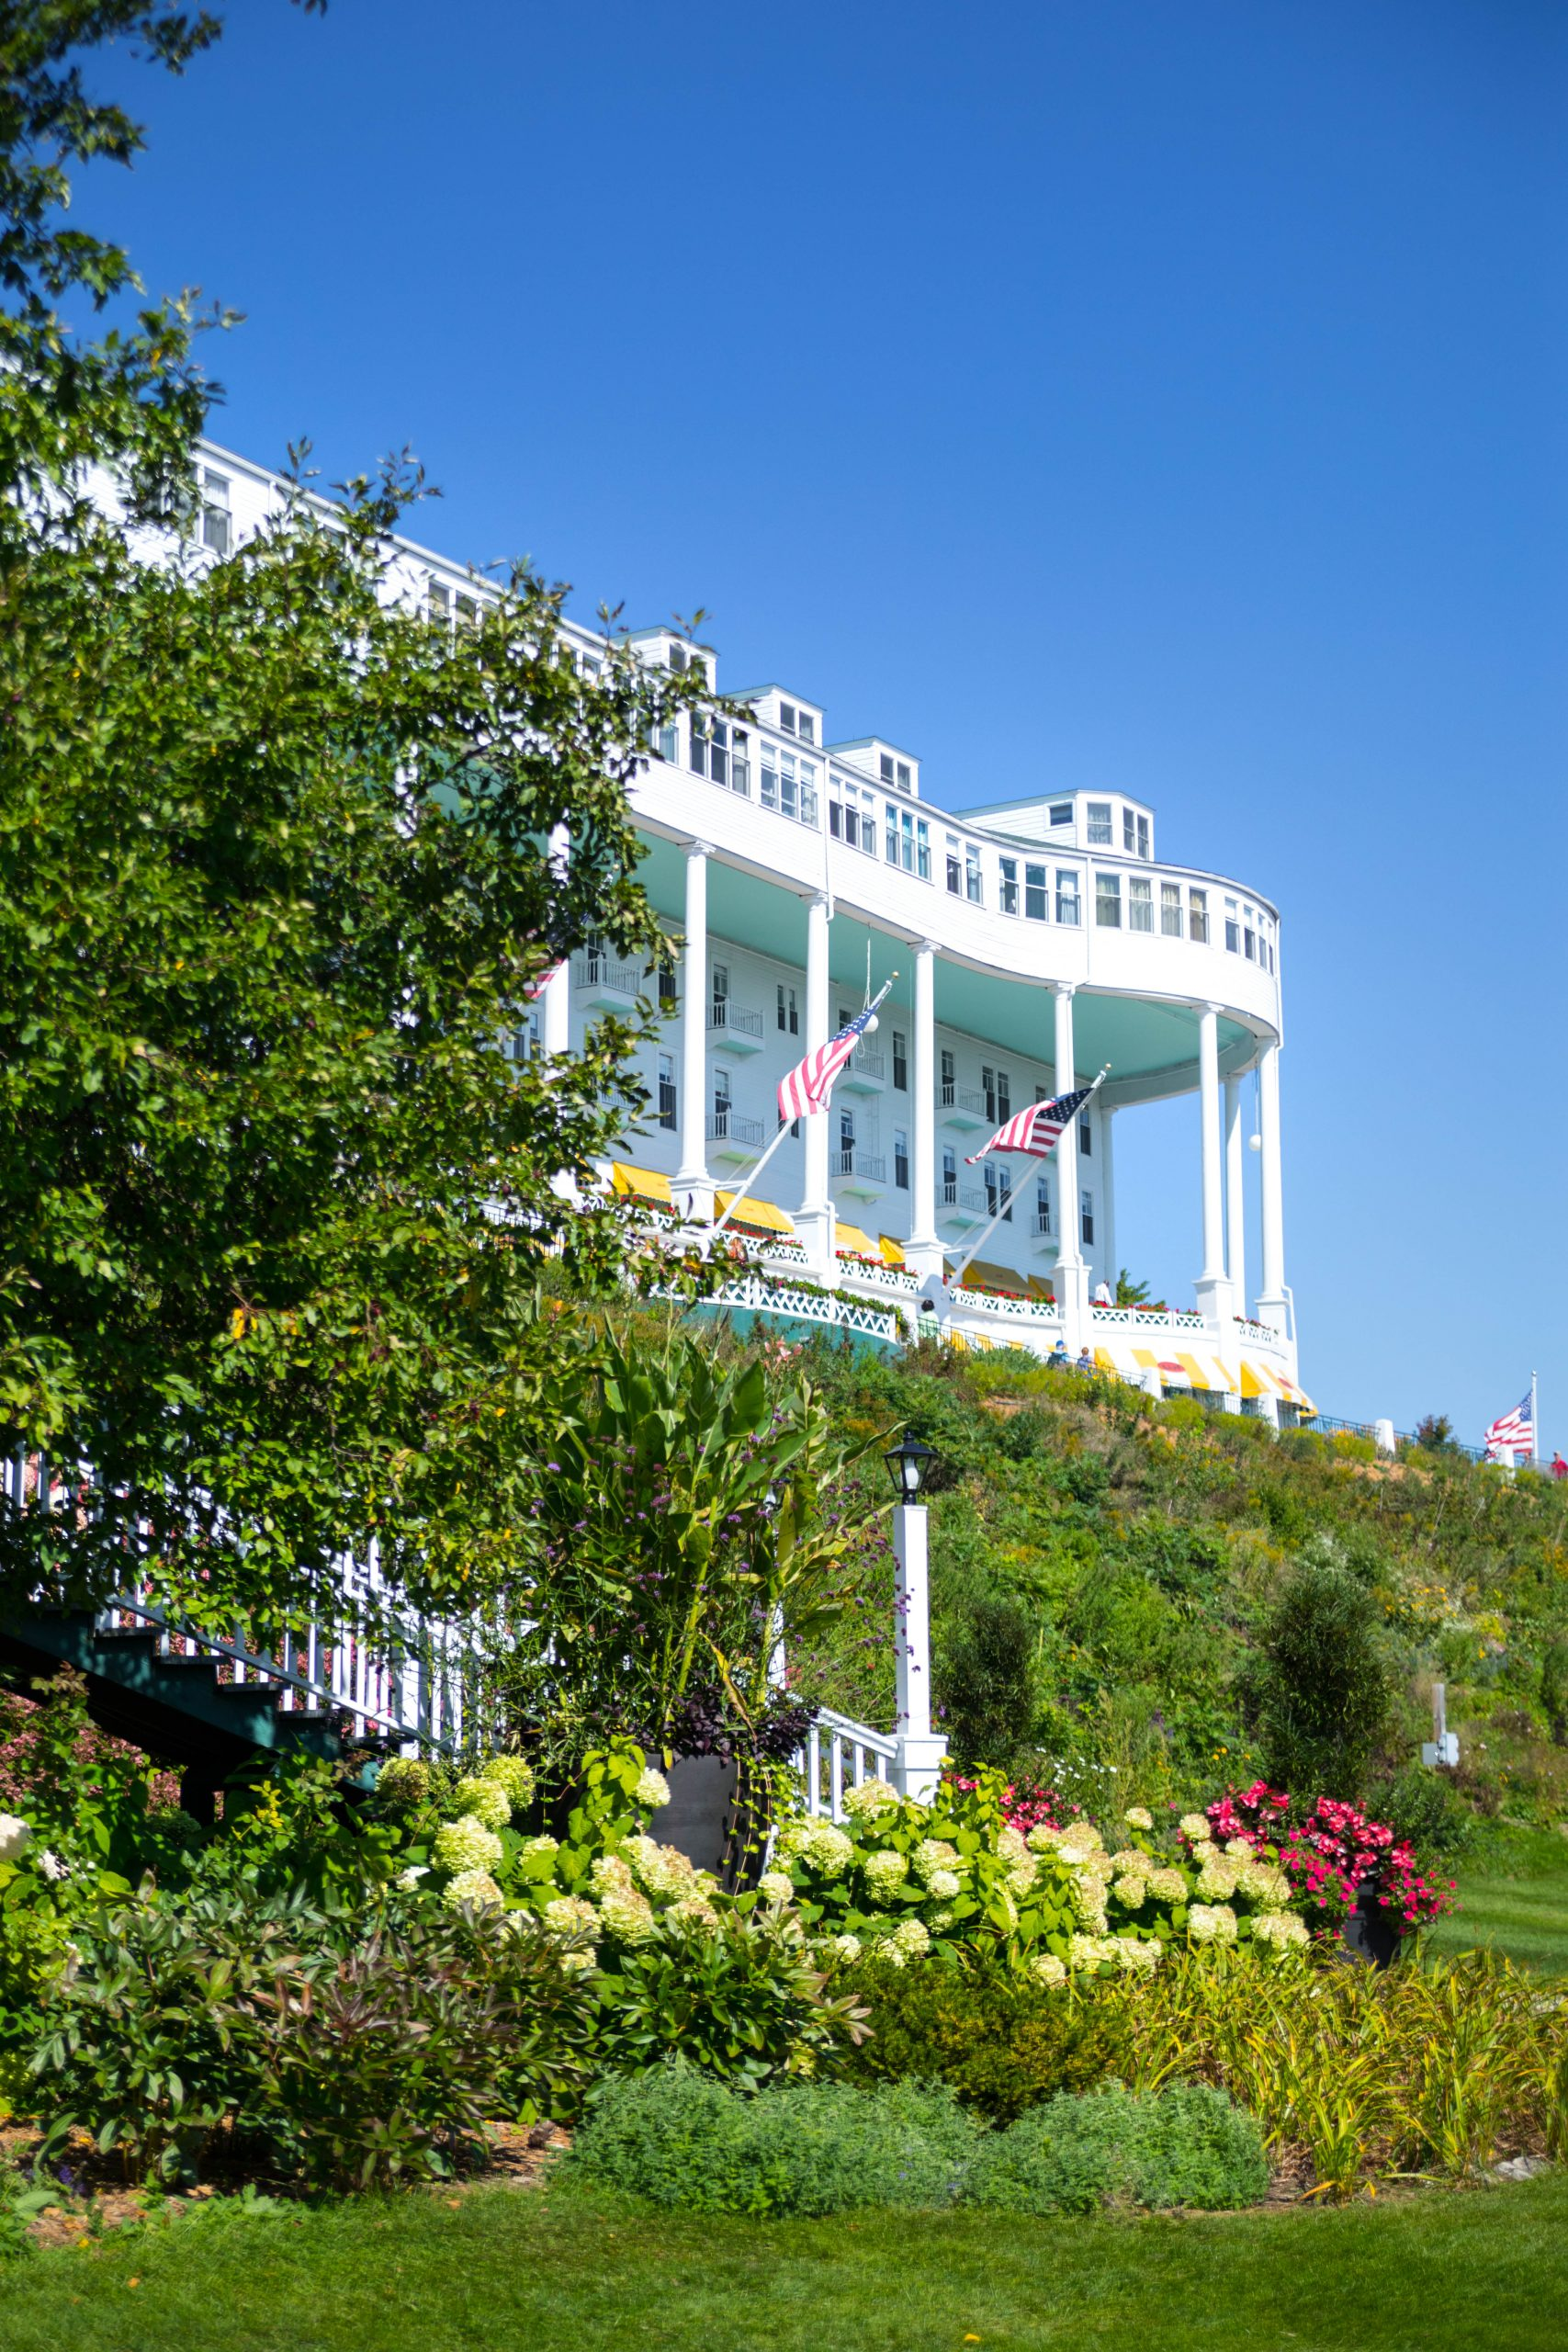 View from Lawn of Grand Hotel on Mackinac Island Michigan Americas Summer Place by Annie Fairfax Luxury Travel Writer & Photographer